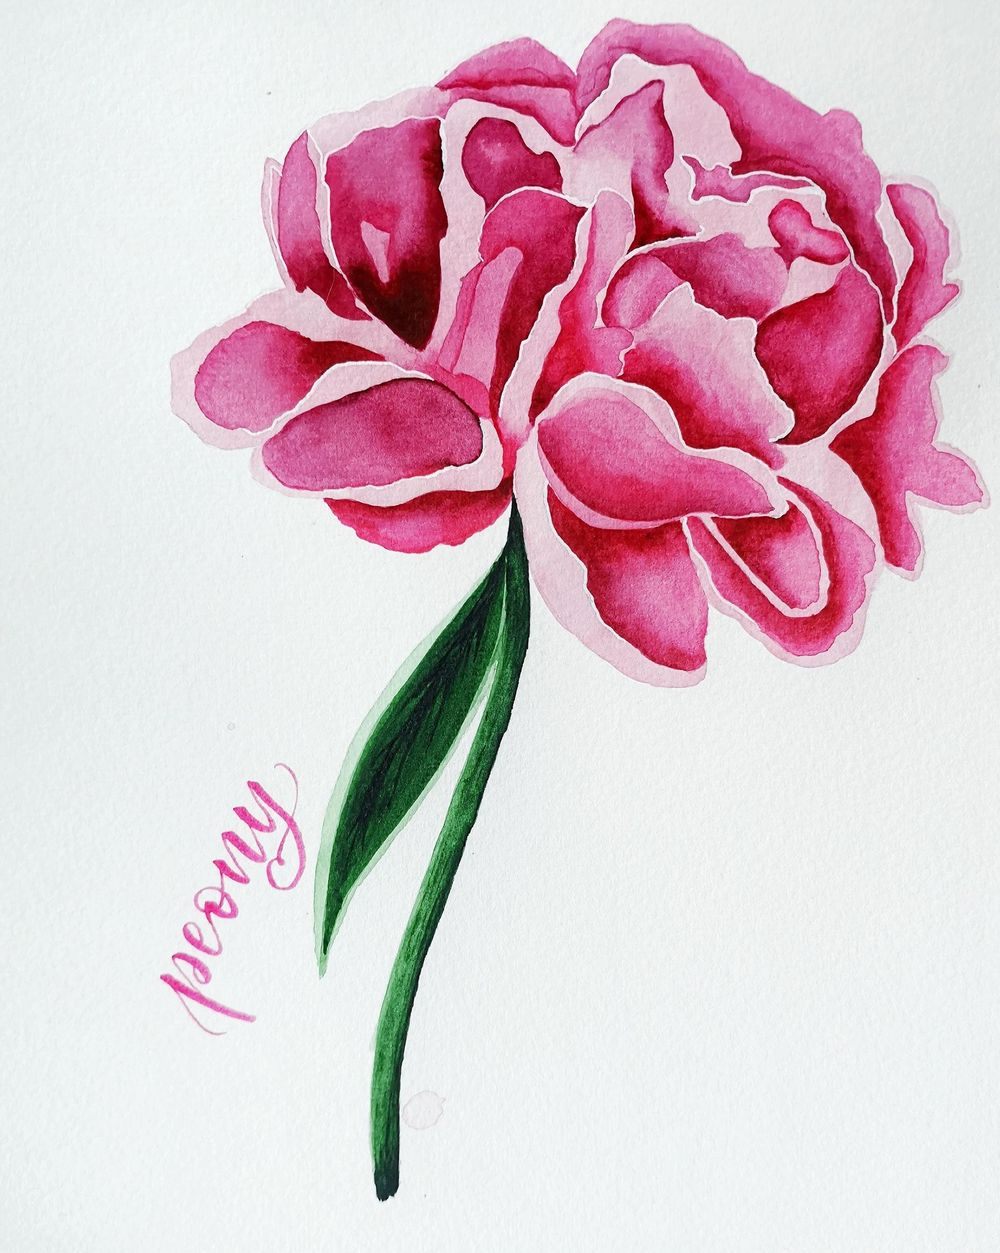 Peonies - image 3 - student project